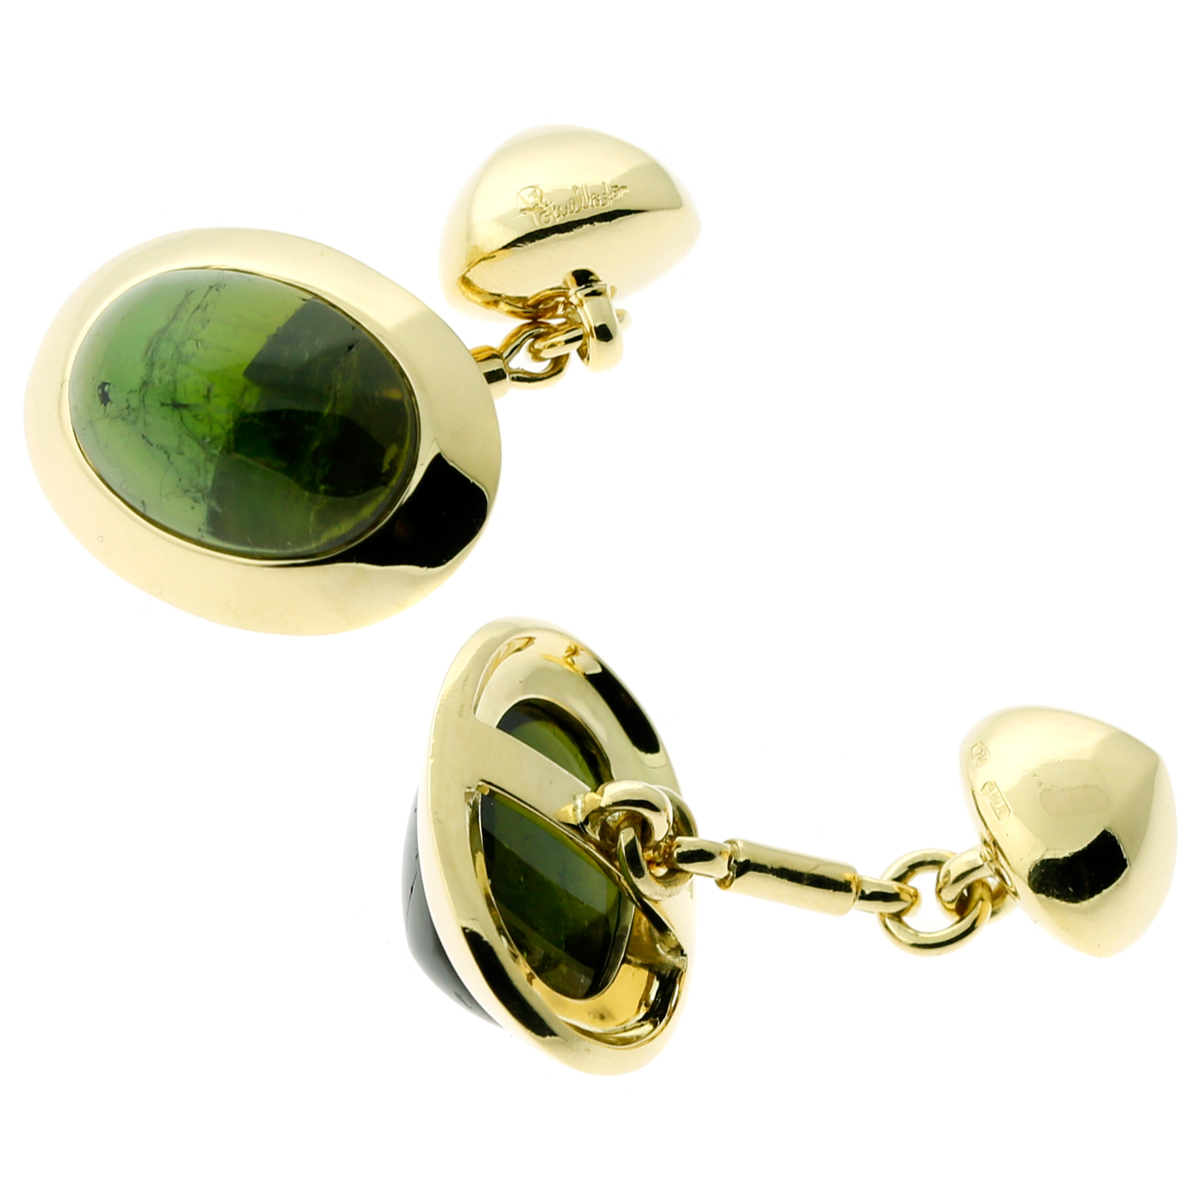 Pomellato Green Tourmaline Gold Cufflinks - Pomellato Jewelry